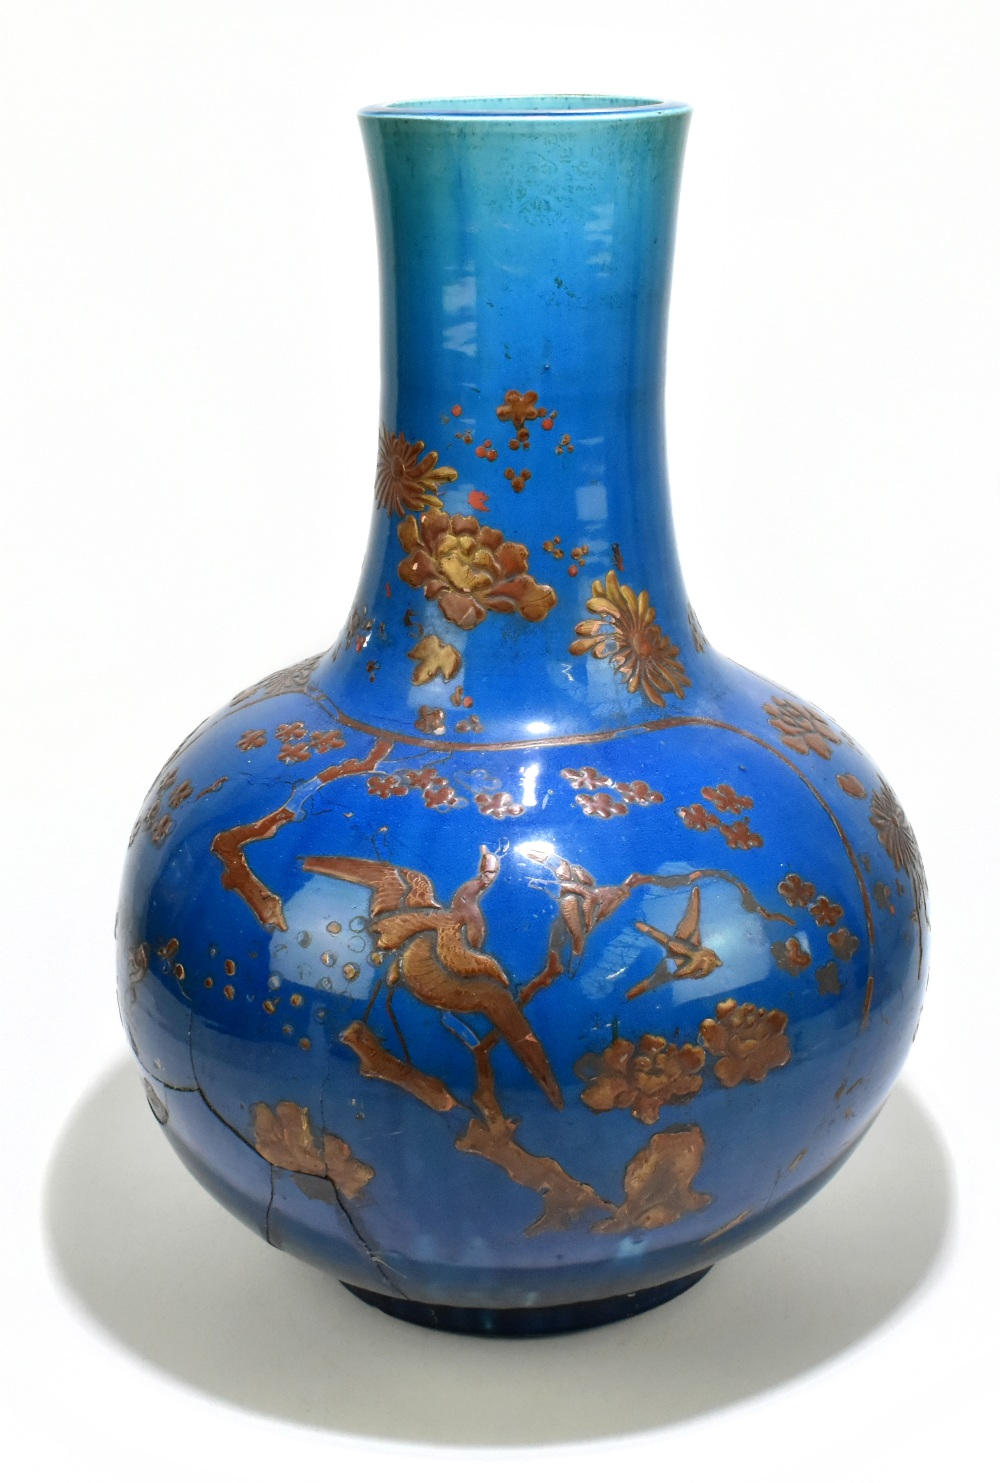 A large and impressive Chinese ceramic baluster form vase with relief chinoiserie decoration